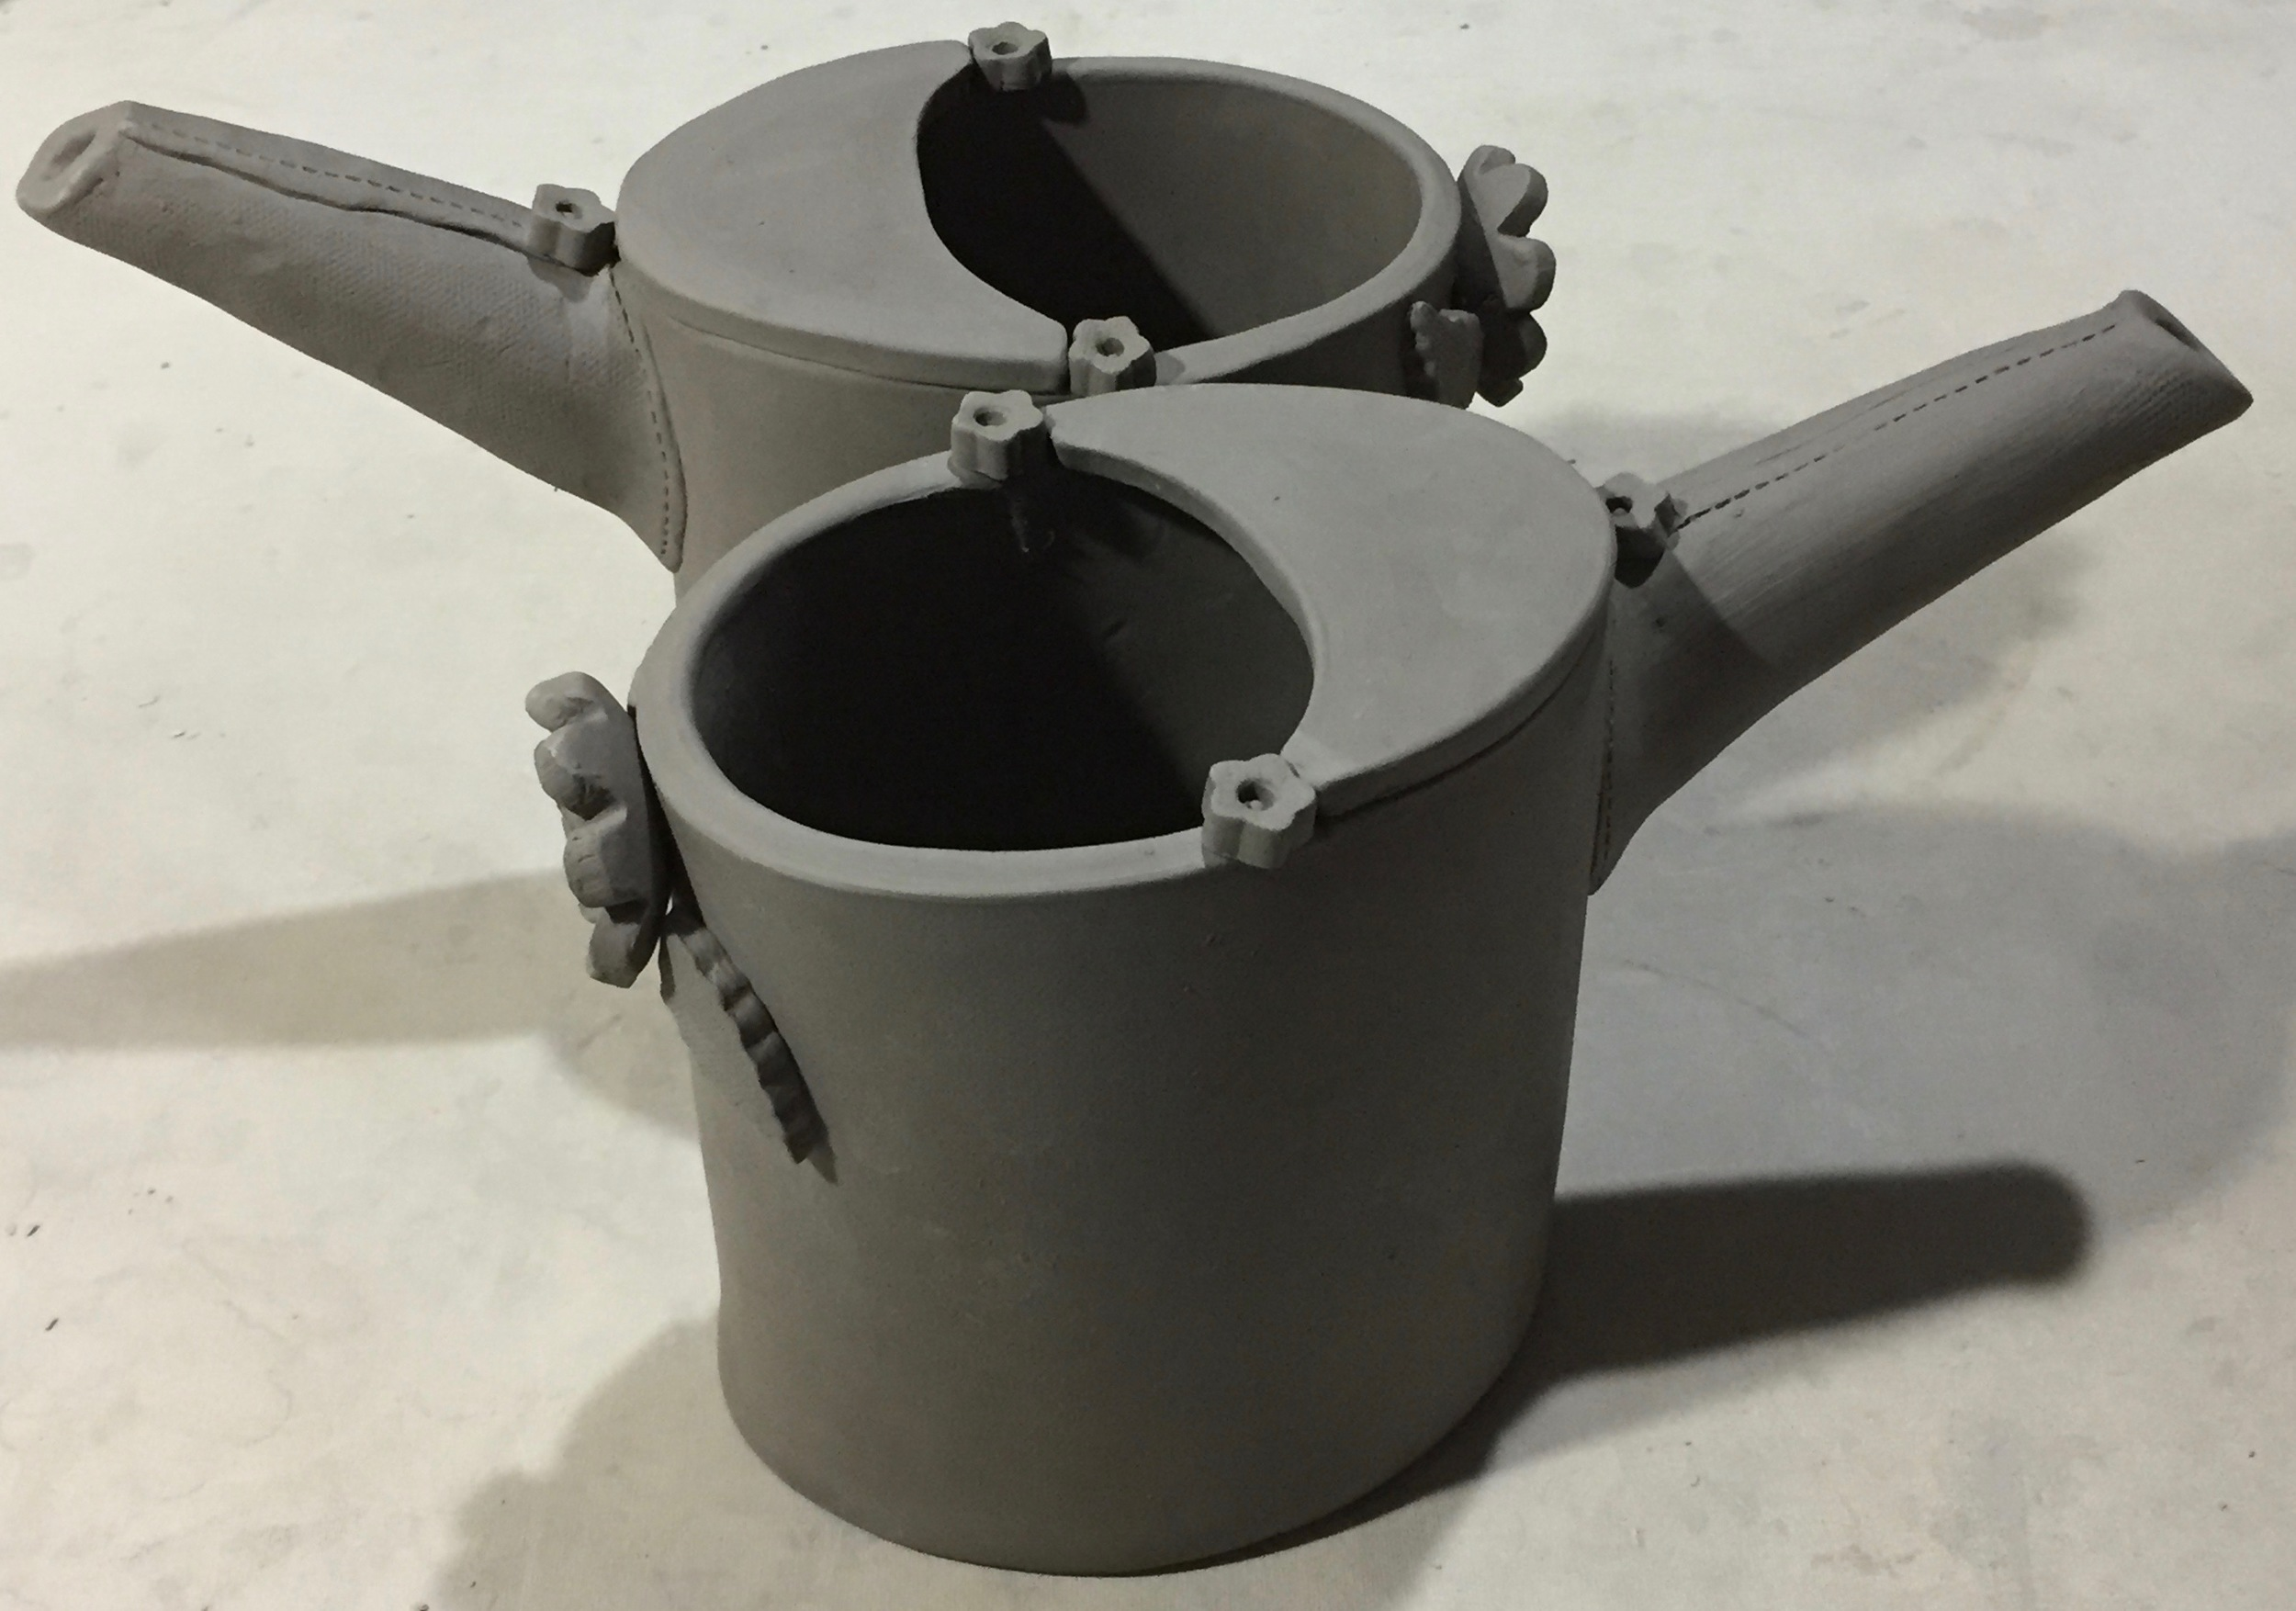 I've tweaked my watering can design this year and eliminated the handle, The flower button at the back and neck of the spout can be held to pour water. When it's not being used to water, it can be used to showcase a large bunch of flowers. I think about the functionality of my pieces a lot. I make and design items I want to use in my own home. I'm always thrilled when I hear how purchasers use my ceramics -- often in ways I hadn't even thought of!